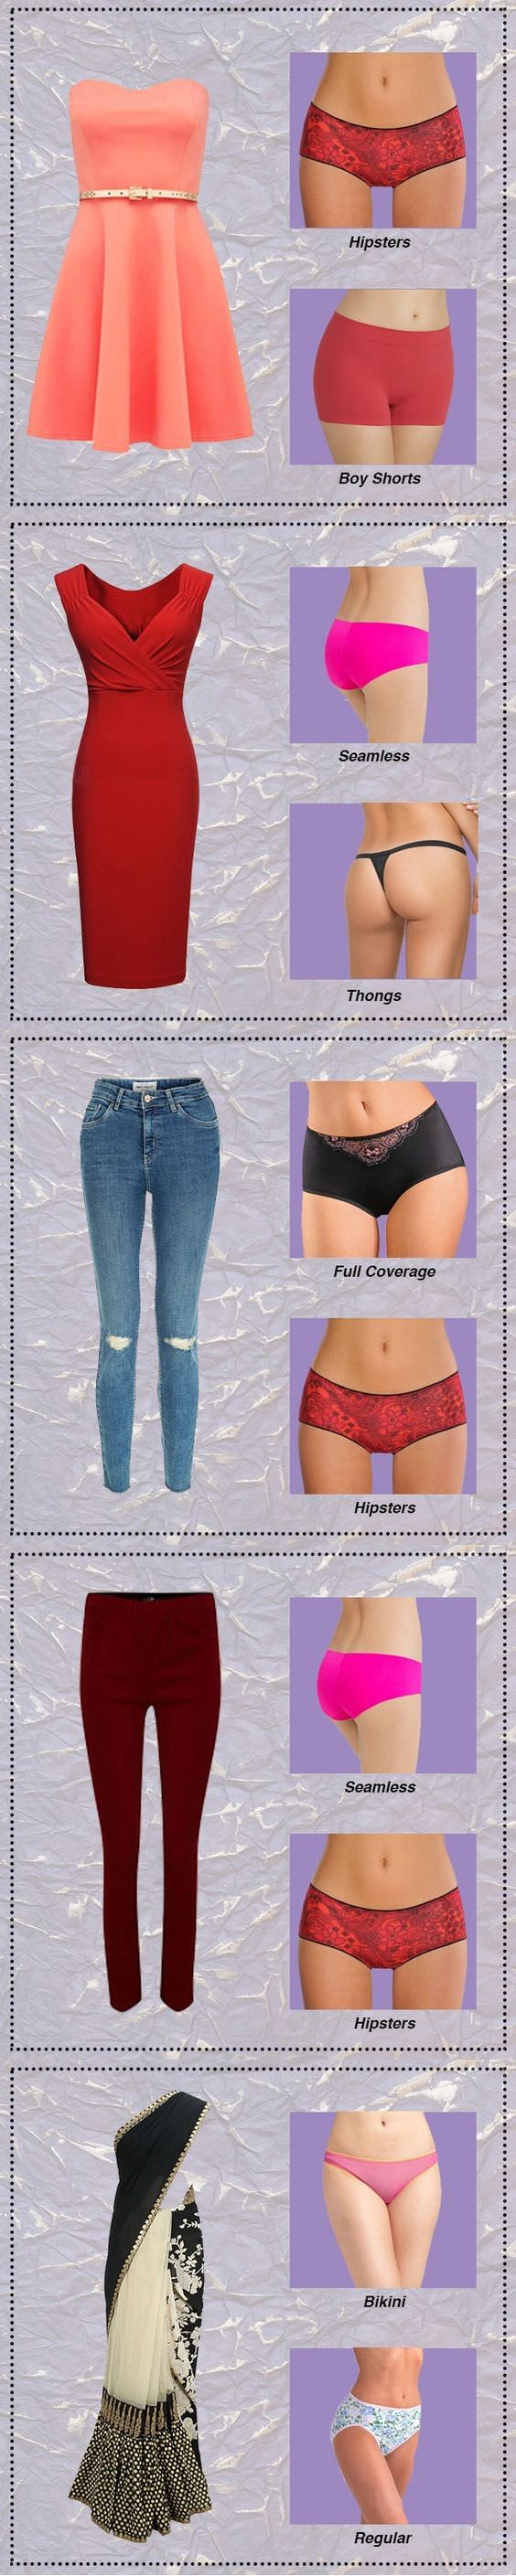 wear-right-type-of-underwear-with-different-dresses